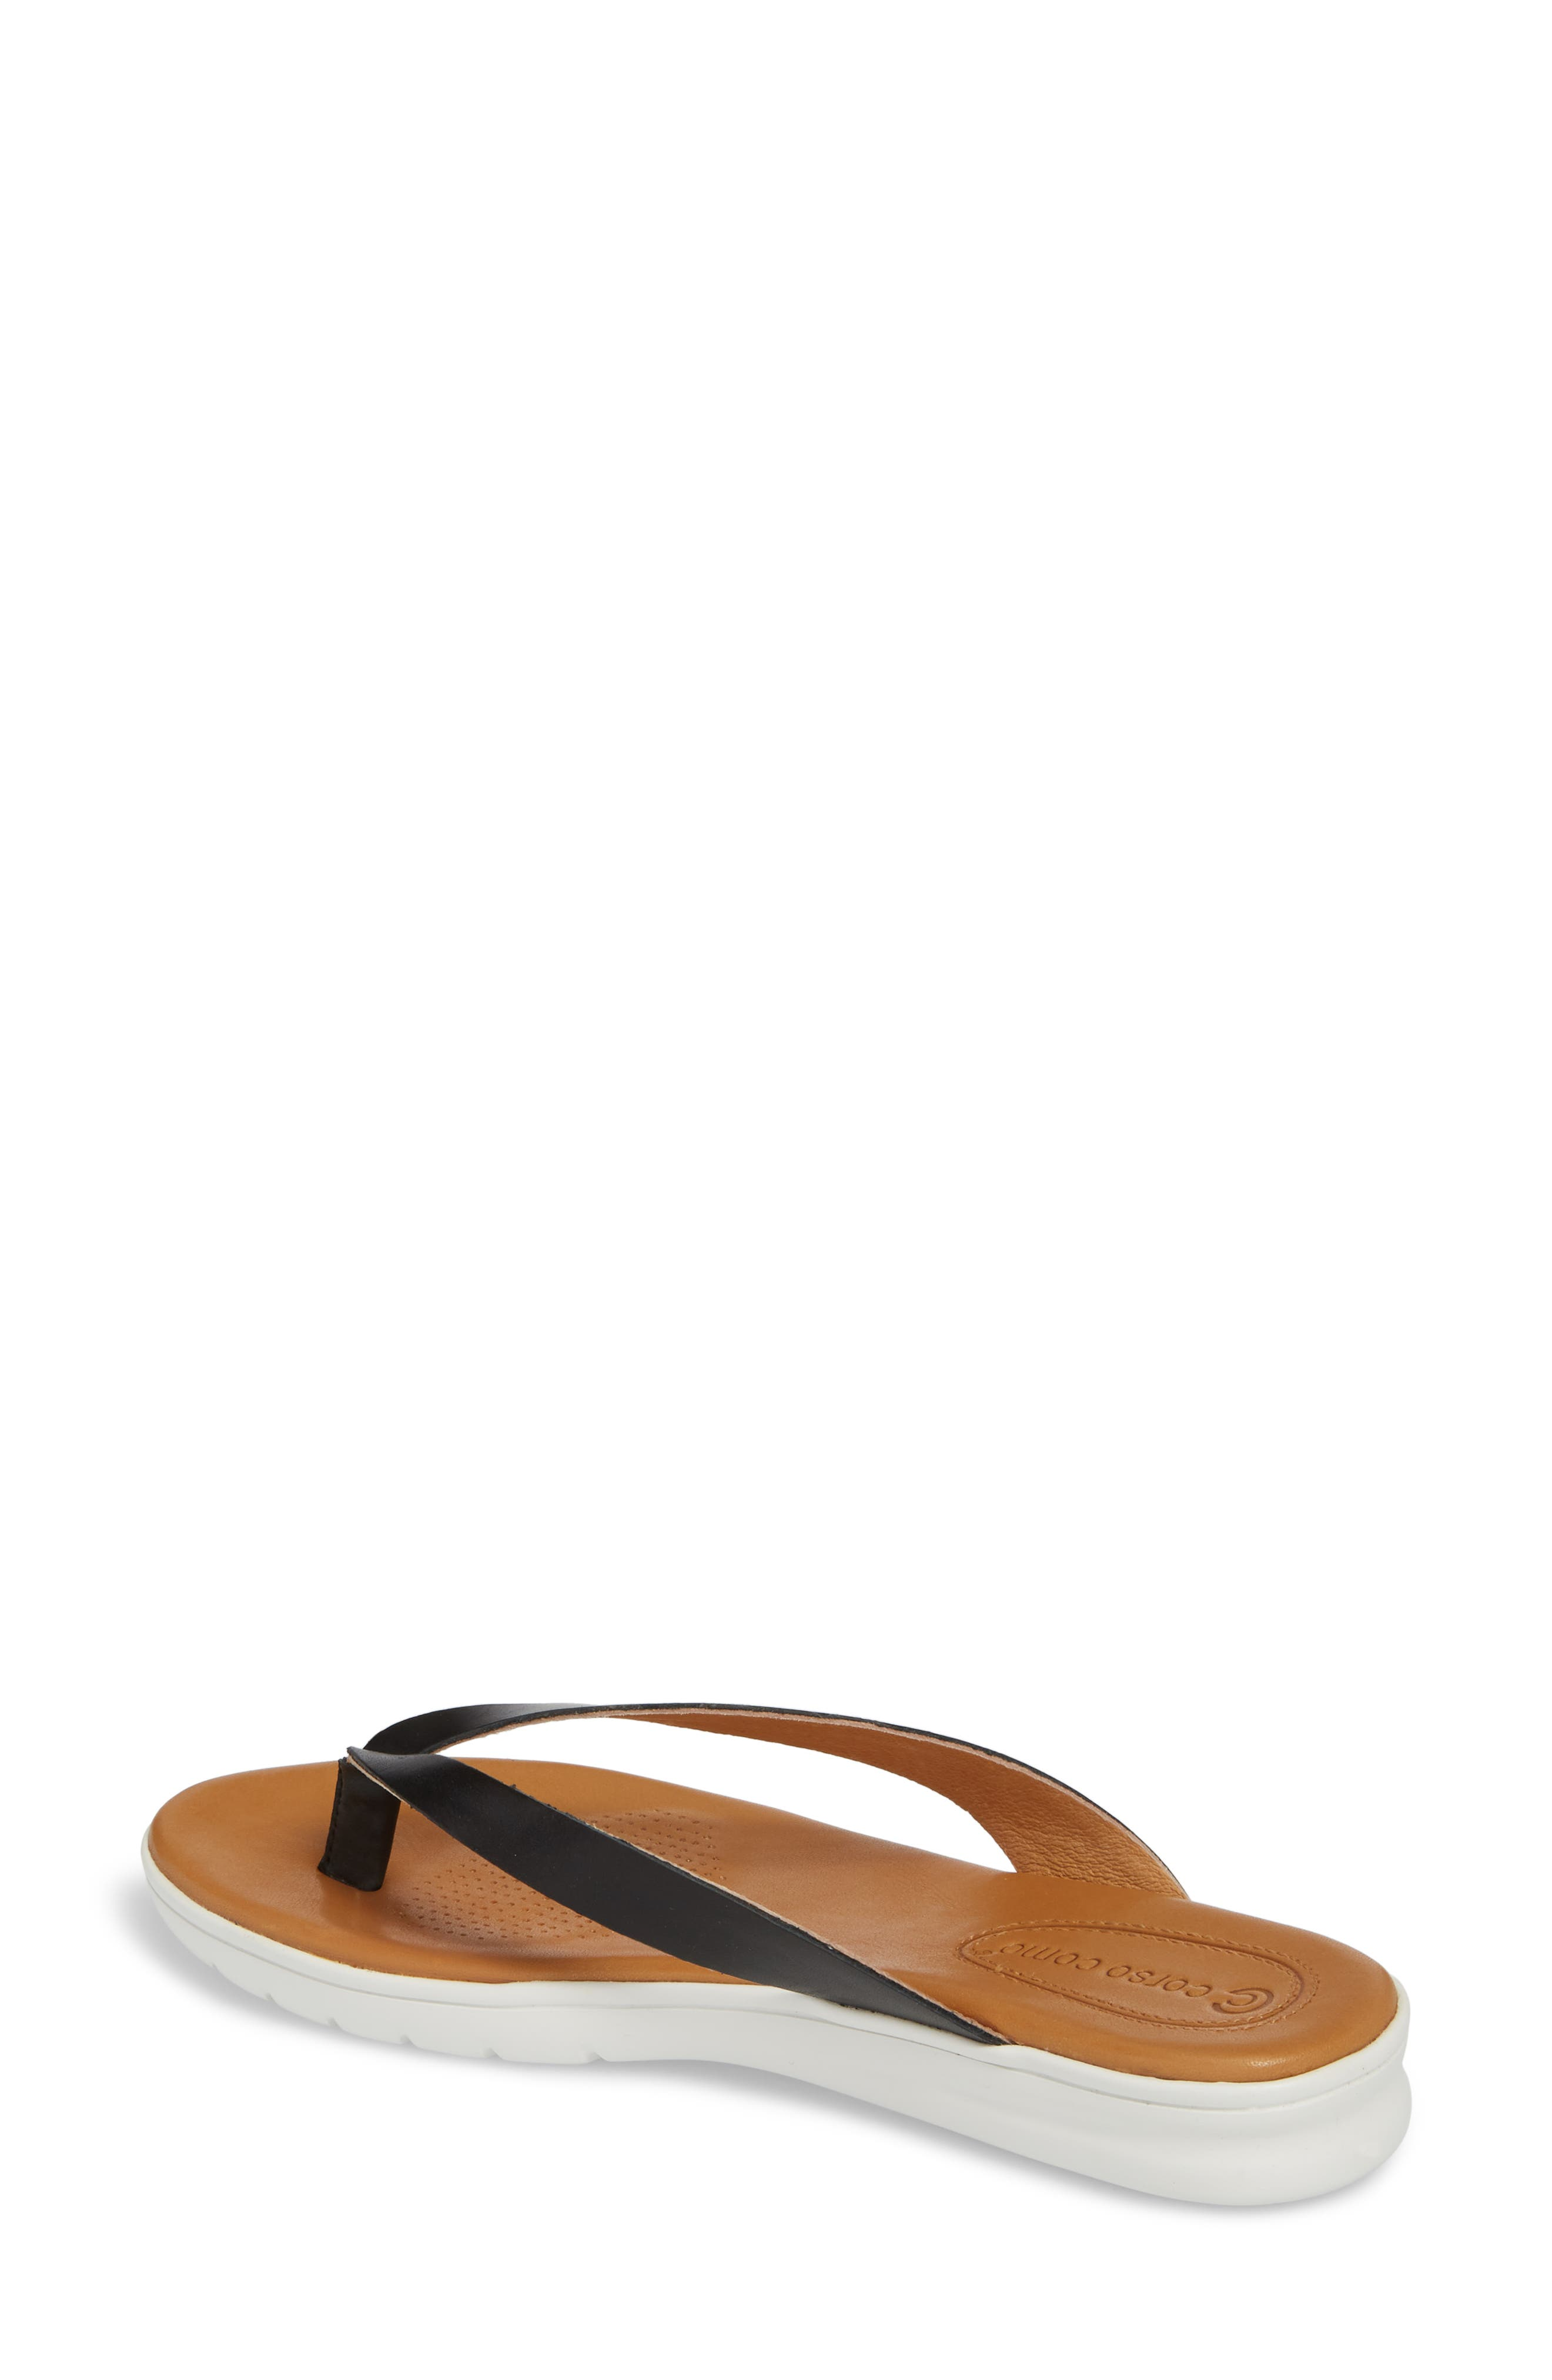 Tinnah Flip Flop,                             Alternate thumbnail 2, color,                             BLACK/ BLACK LEATHER